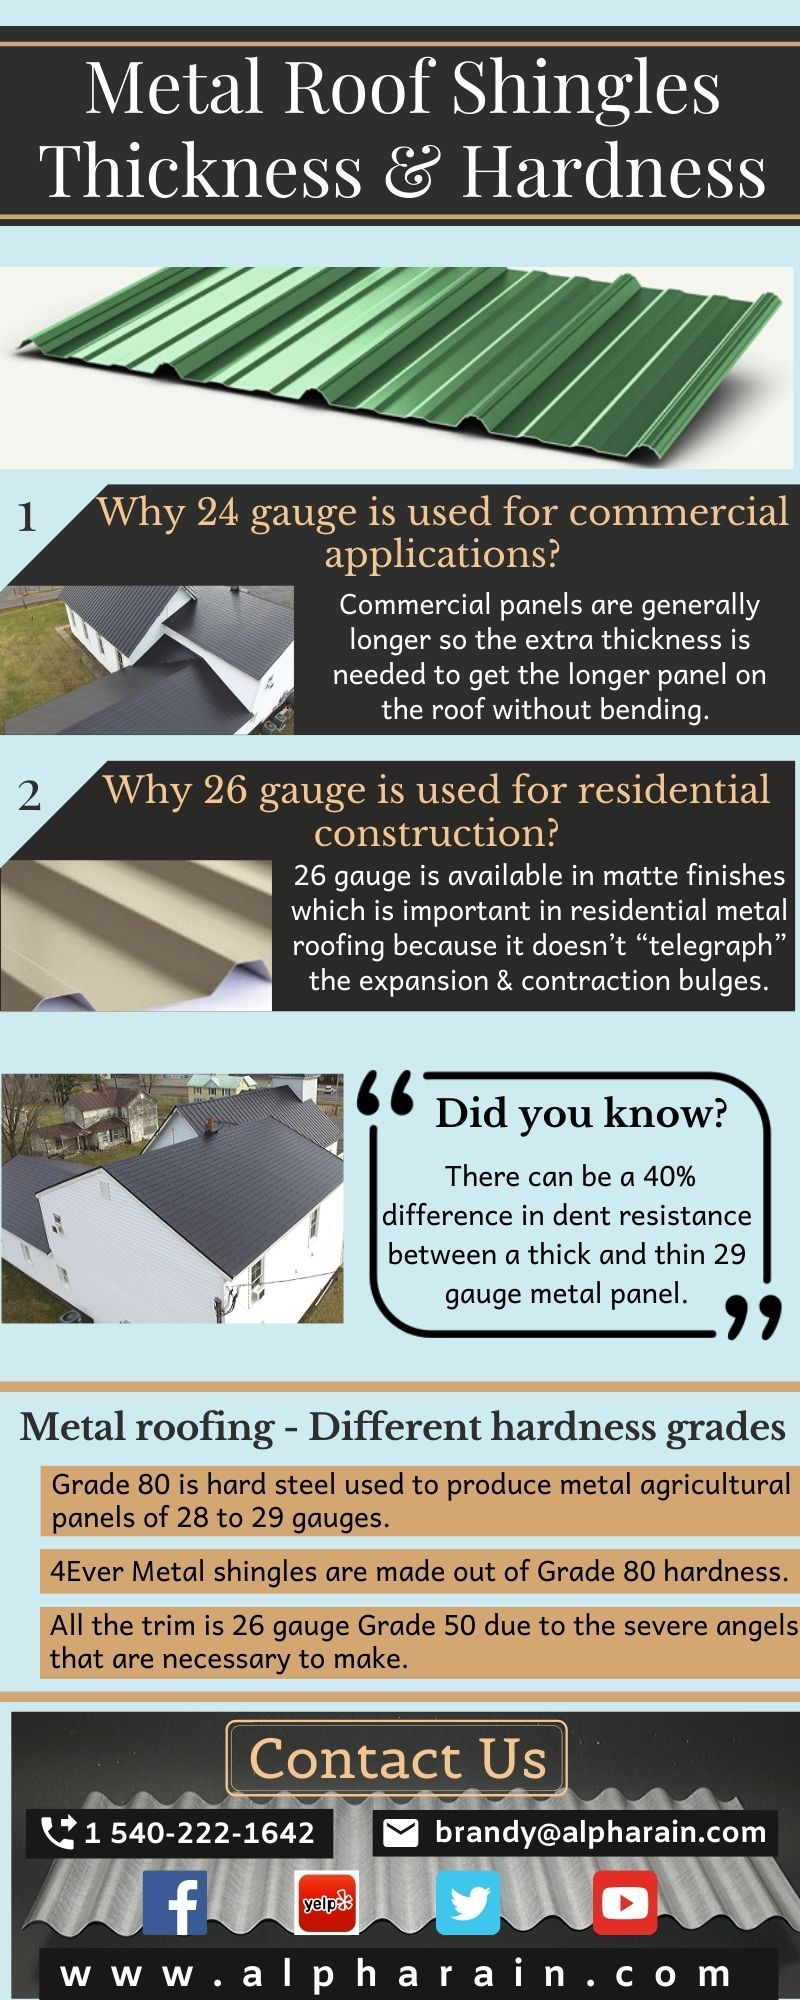 Where The Metal Roofing Company Use Different Gauge In 2020 Metal Roof Metal Shingle Roof Metal Shingles